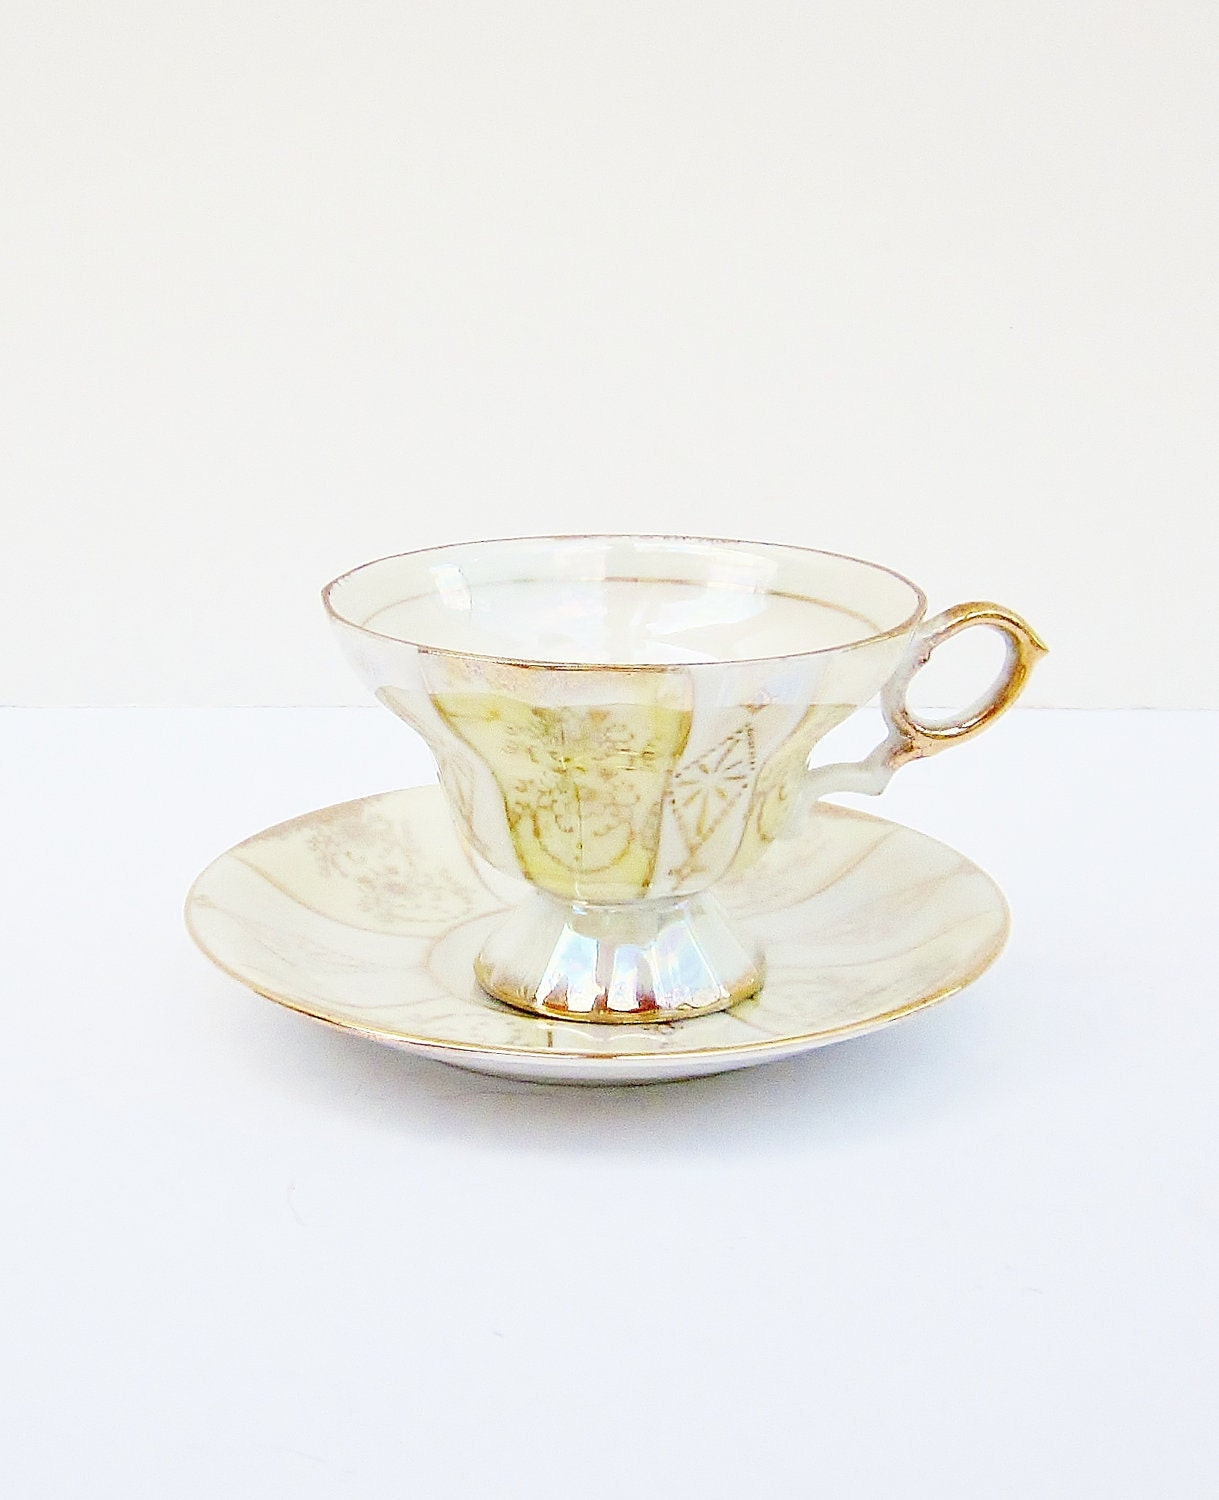 Vintage Teacup Lusterware Royal Crown China Creamy Yellow  Opalescent  Iridescent - jarmfarm